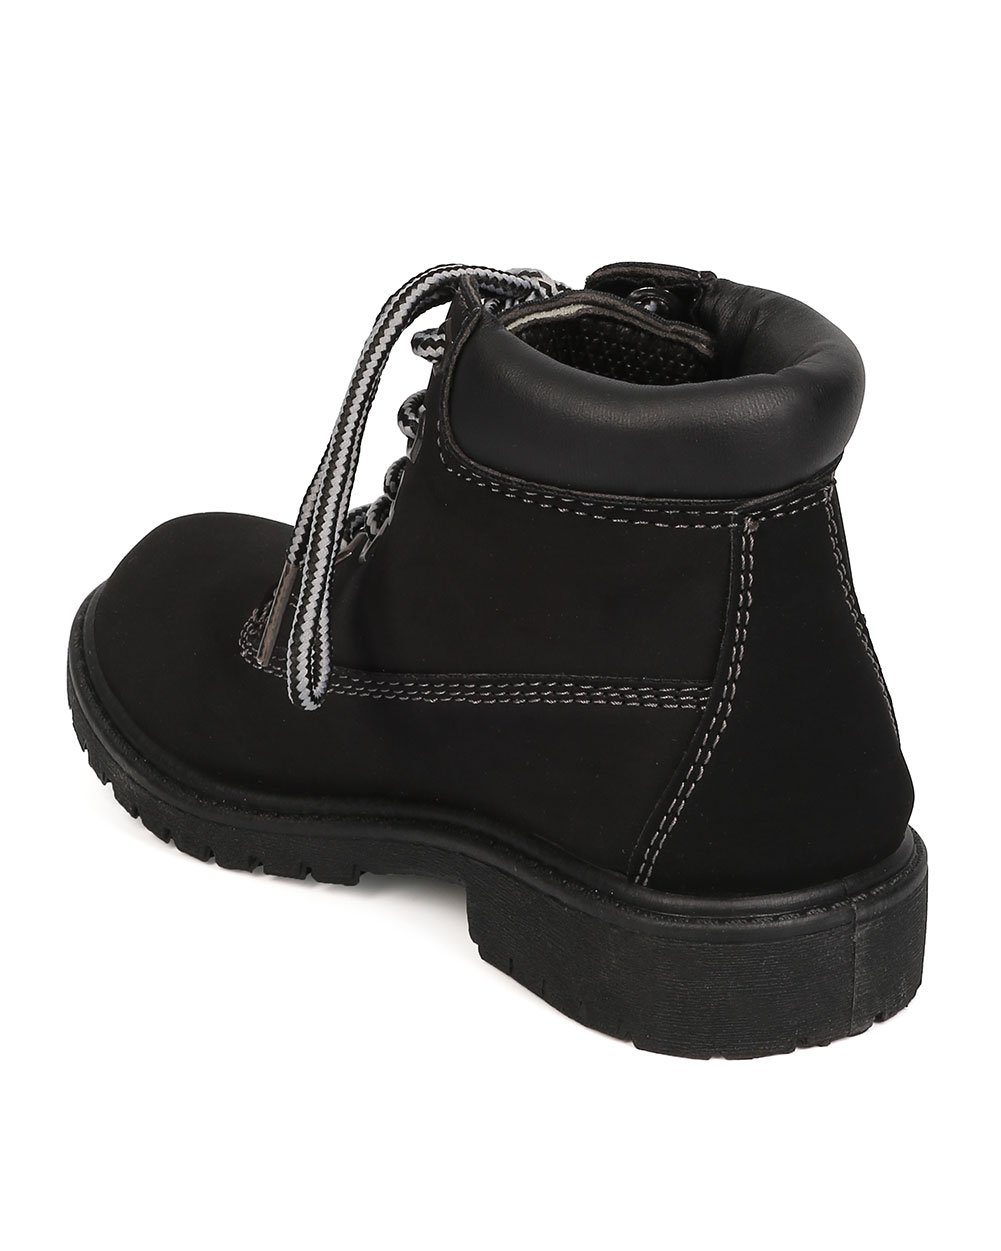 Nubuck Round Toe Lace Up Lug Sole All Weather Ankle Boot (Toddler/Little Girl/Big Girl) FA28 - Black (Size: Toddler 9) by Refresh (Image #3)